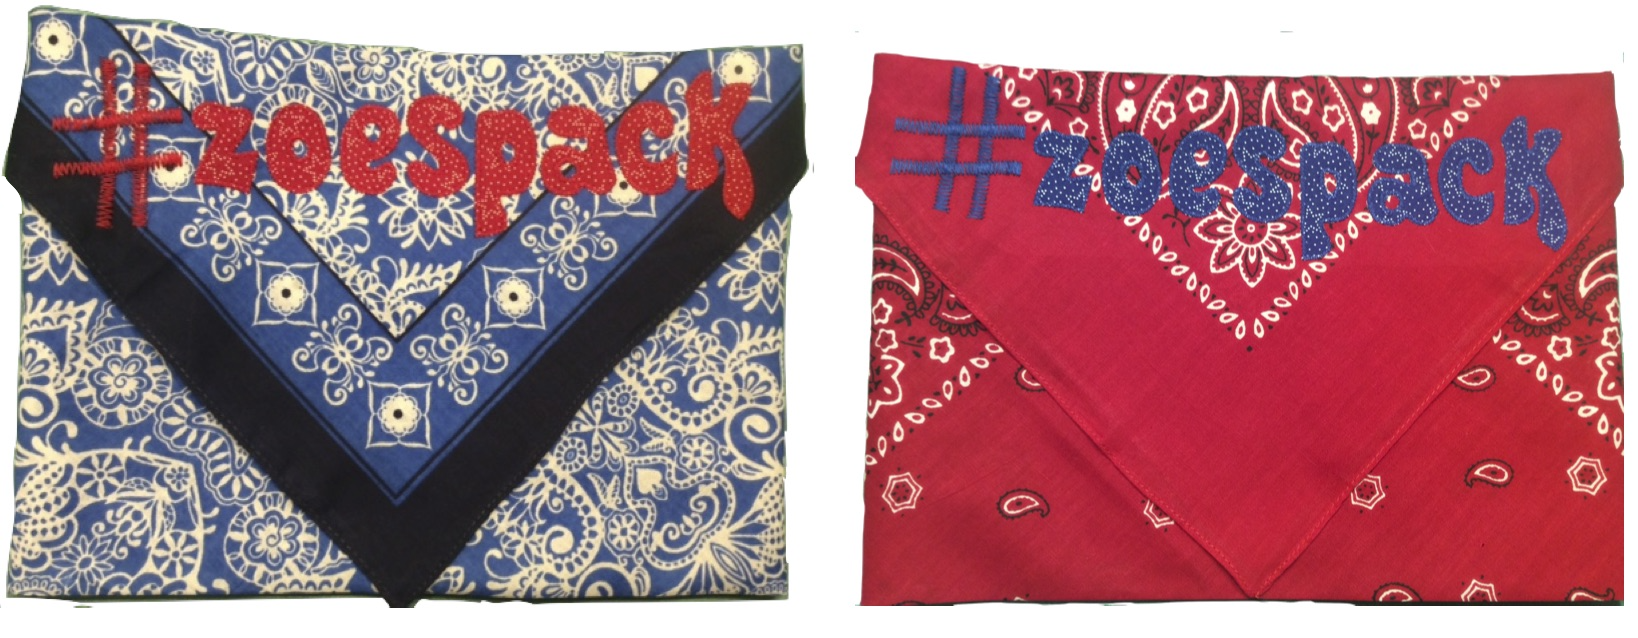 Two embroidered #Zoespack bandanas, left one is blue paisley background with a black edge. Right one is red background with white paisley pattern.